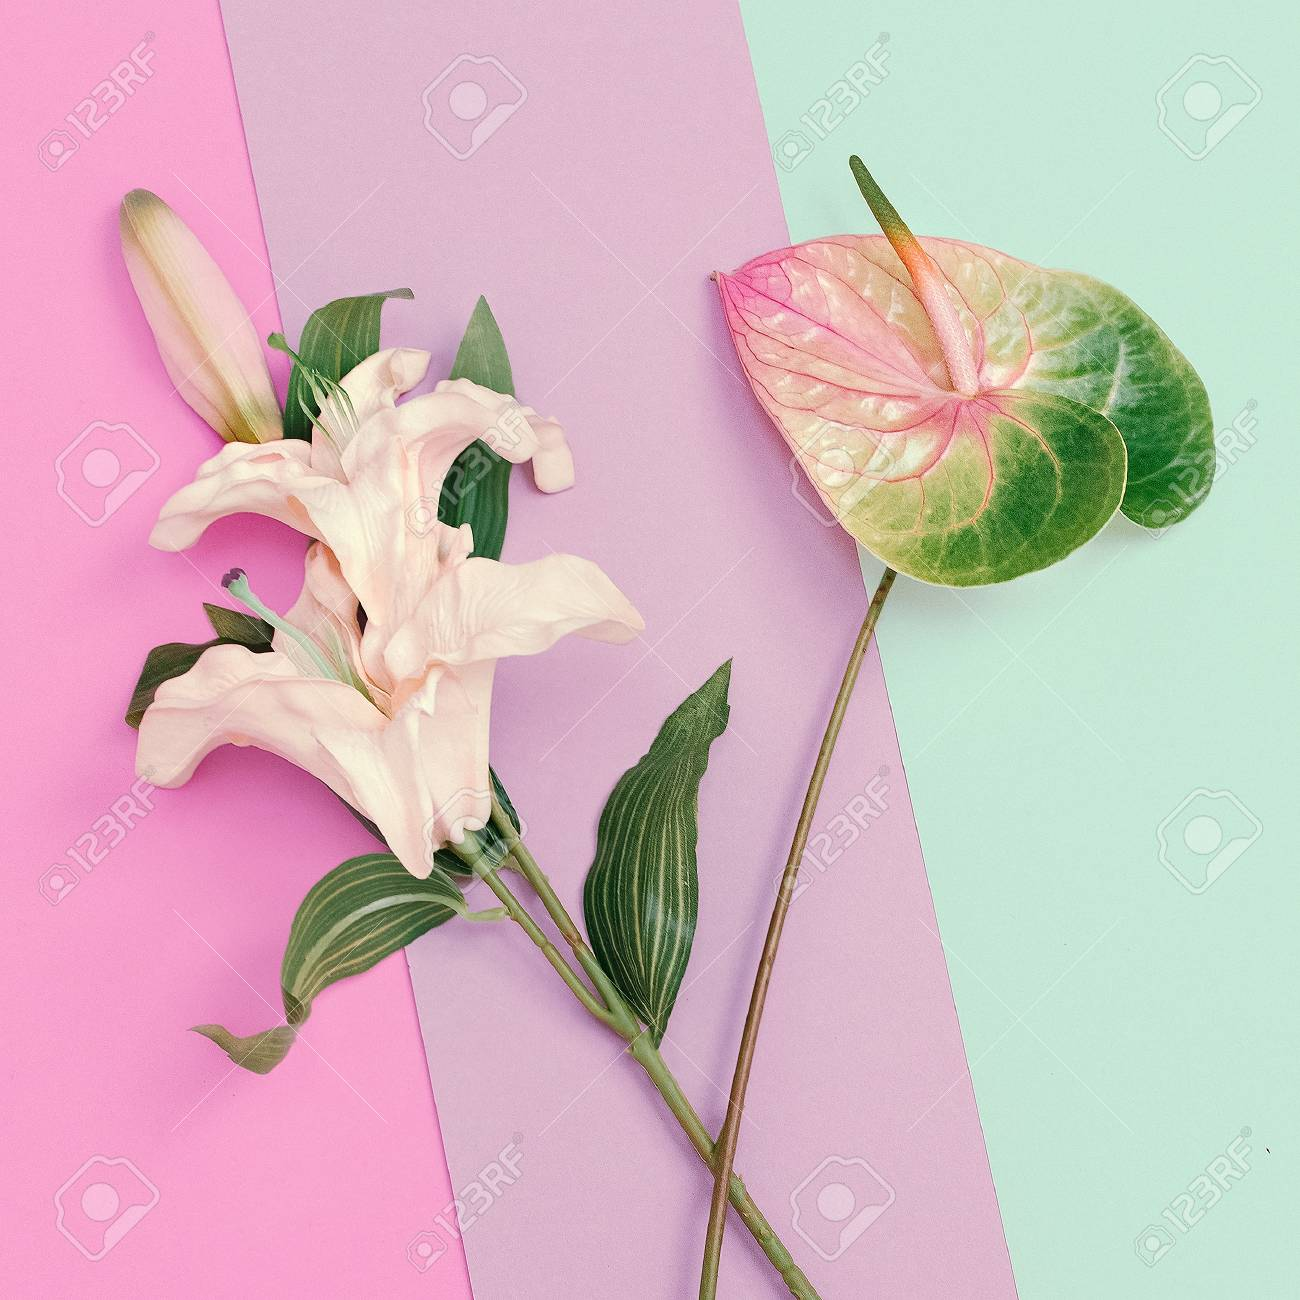 Minimalist Fashion Flowers Lily And Calla Pastel Colors Trend